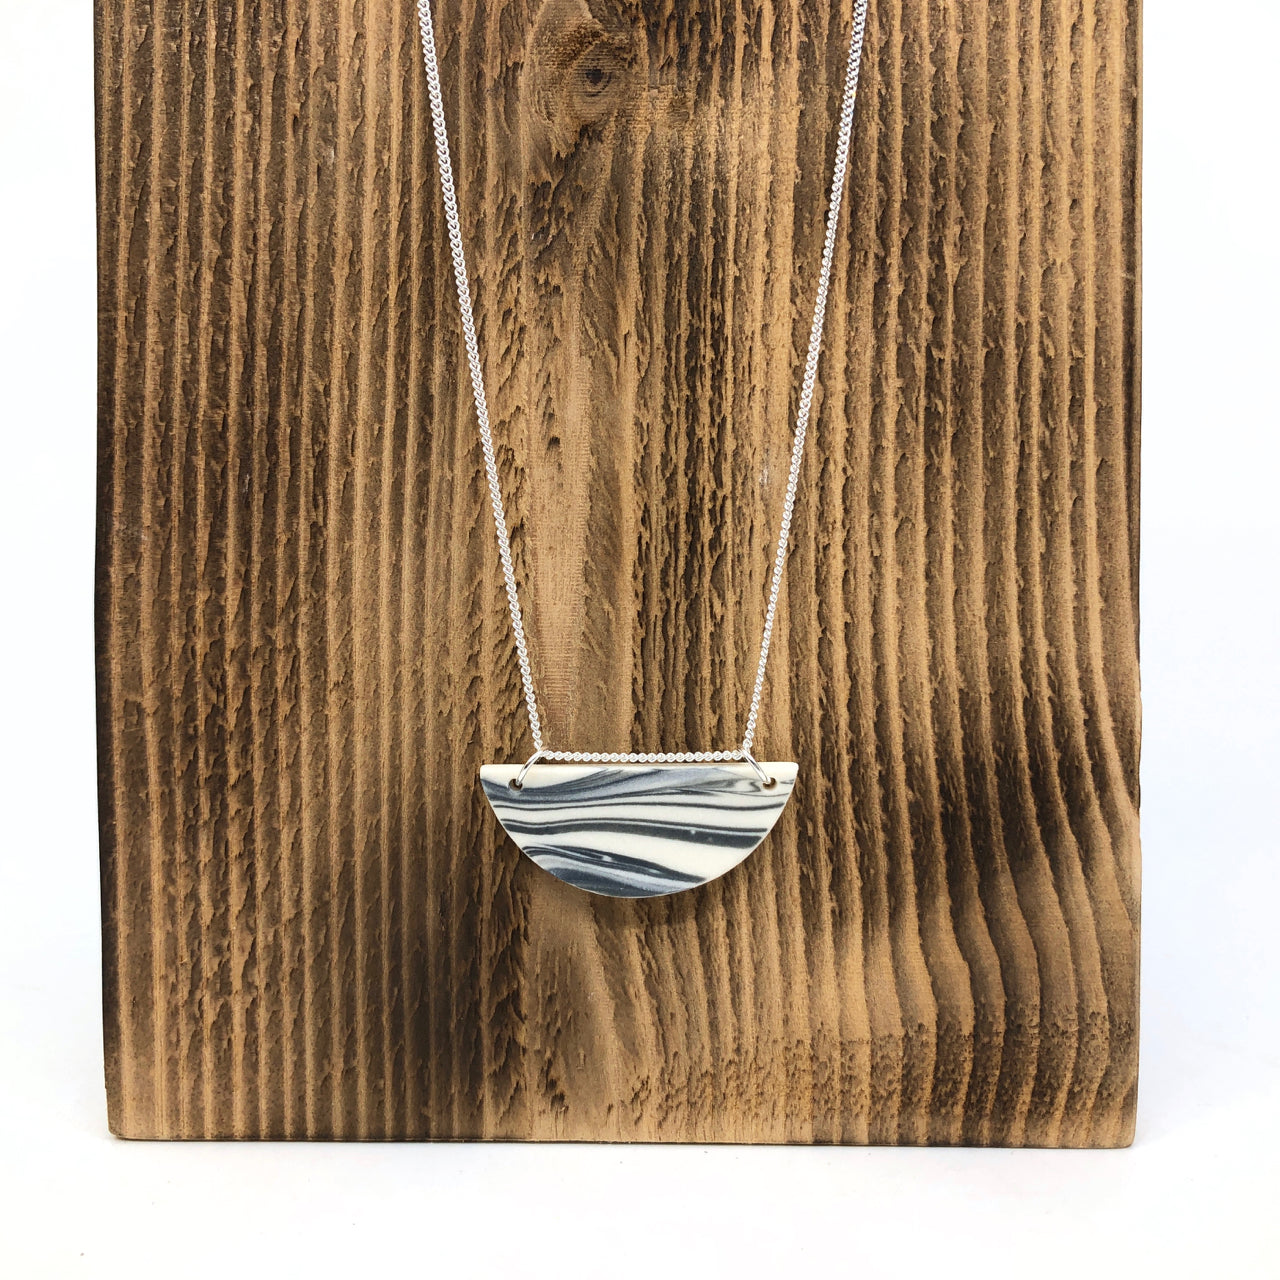 Storm Strata Tiny Half Circle Necklace